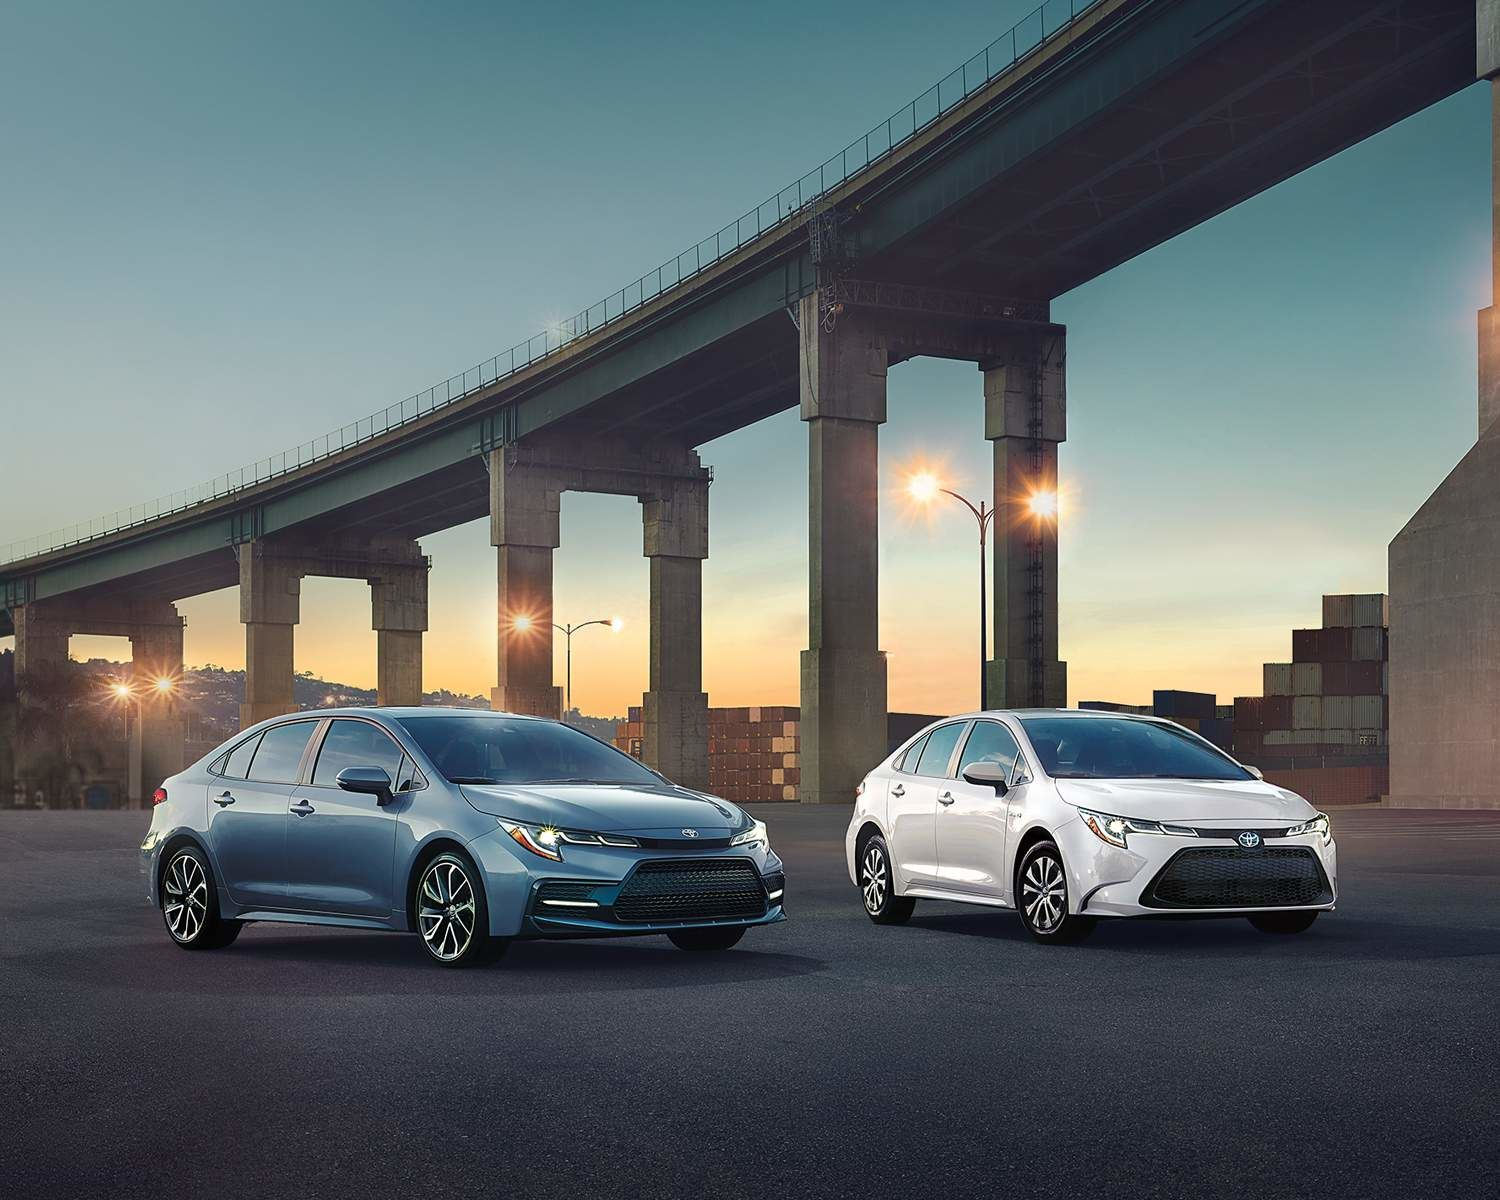 2021 Corolla's by a bridge in a city at dusk